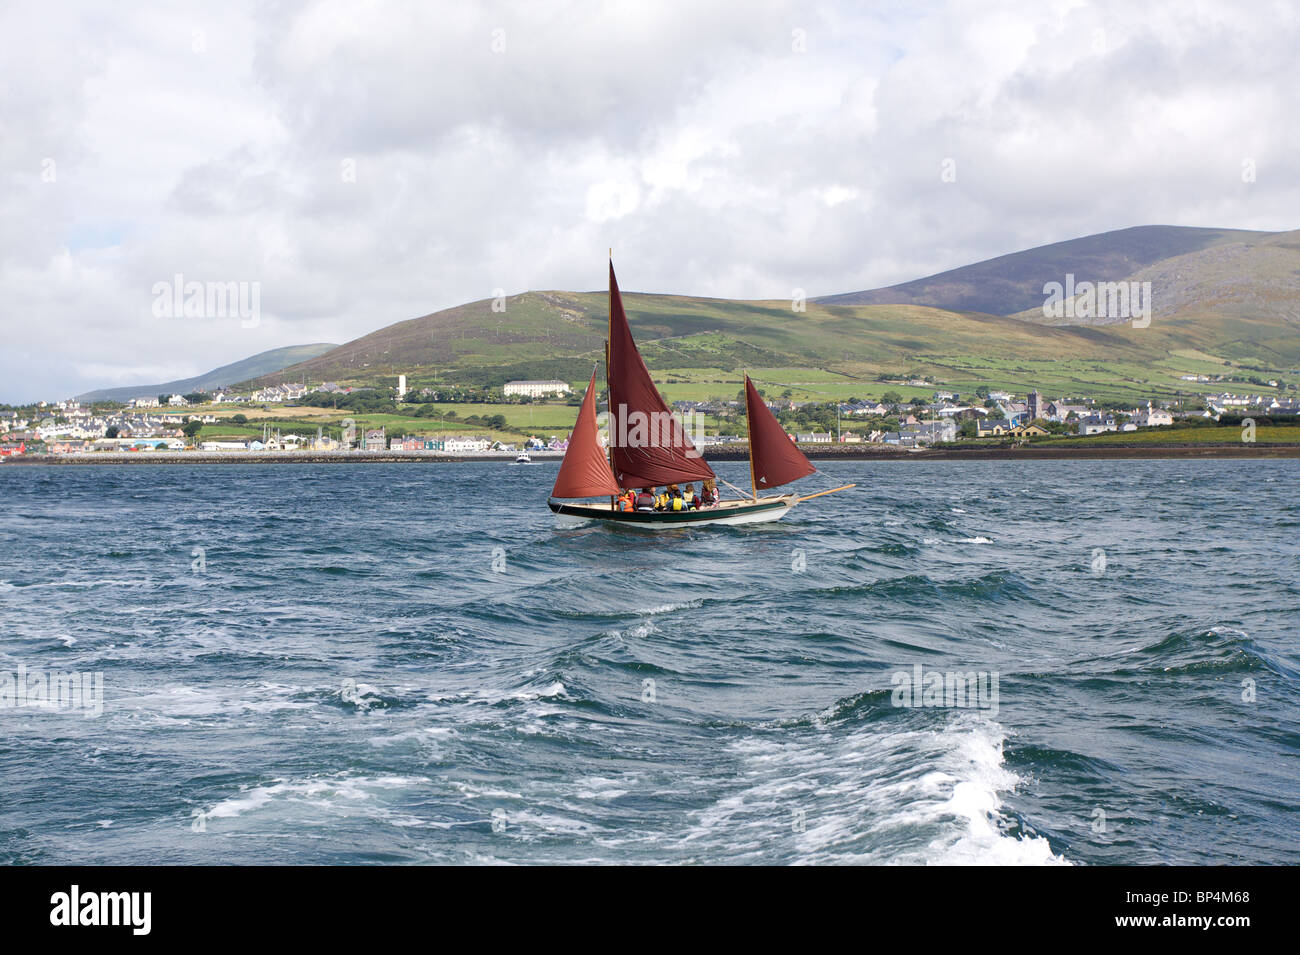 A sailing boat in Dingle harbour, County Kerry in the Republic of Ireland - Stock Image